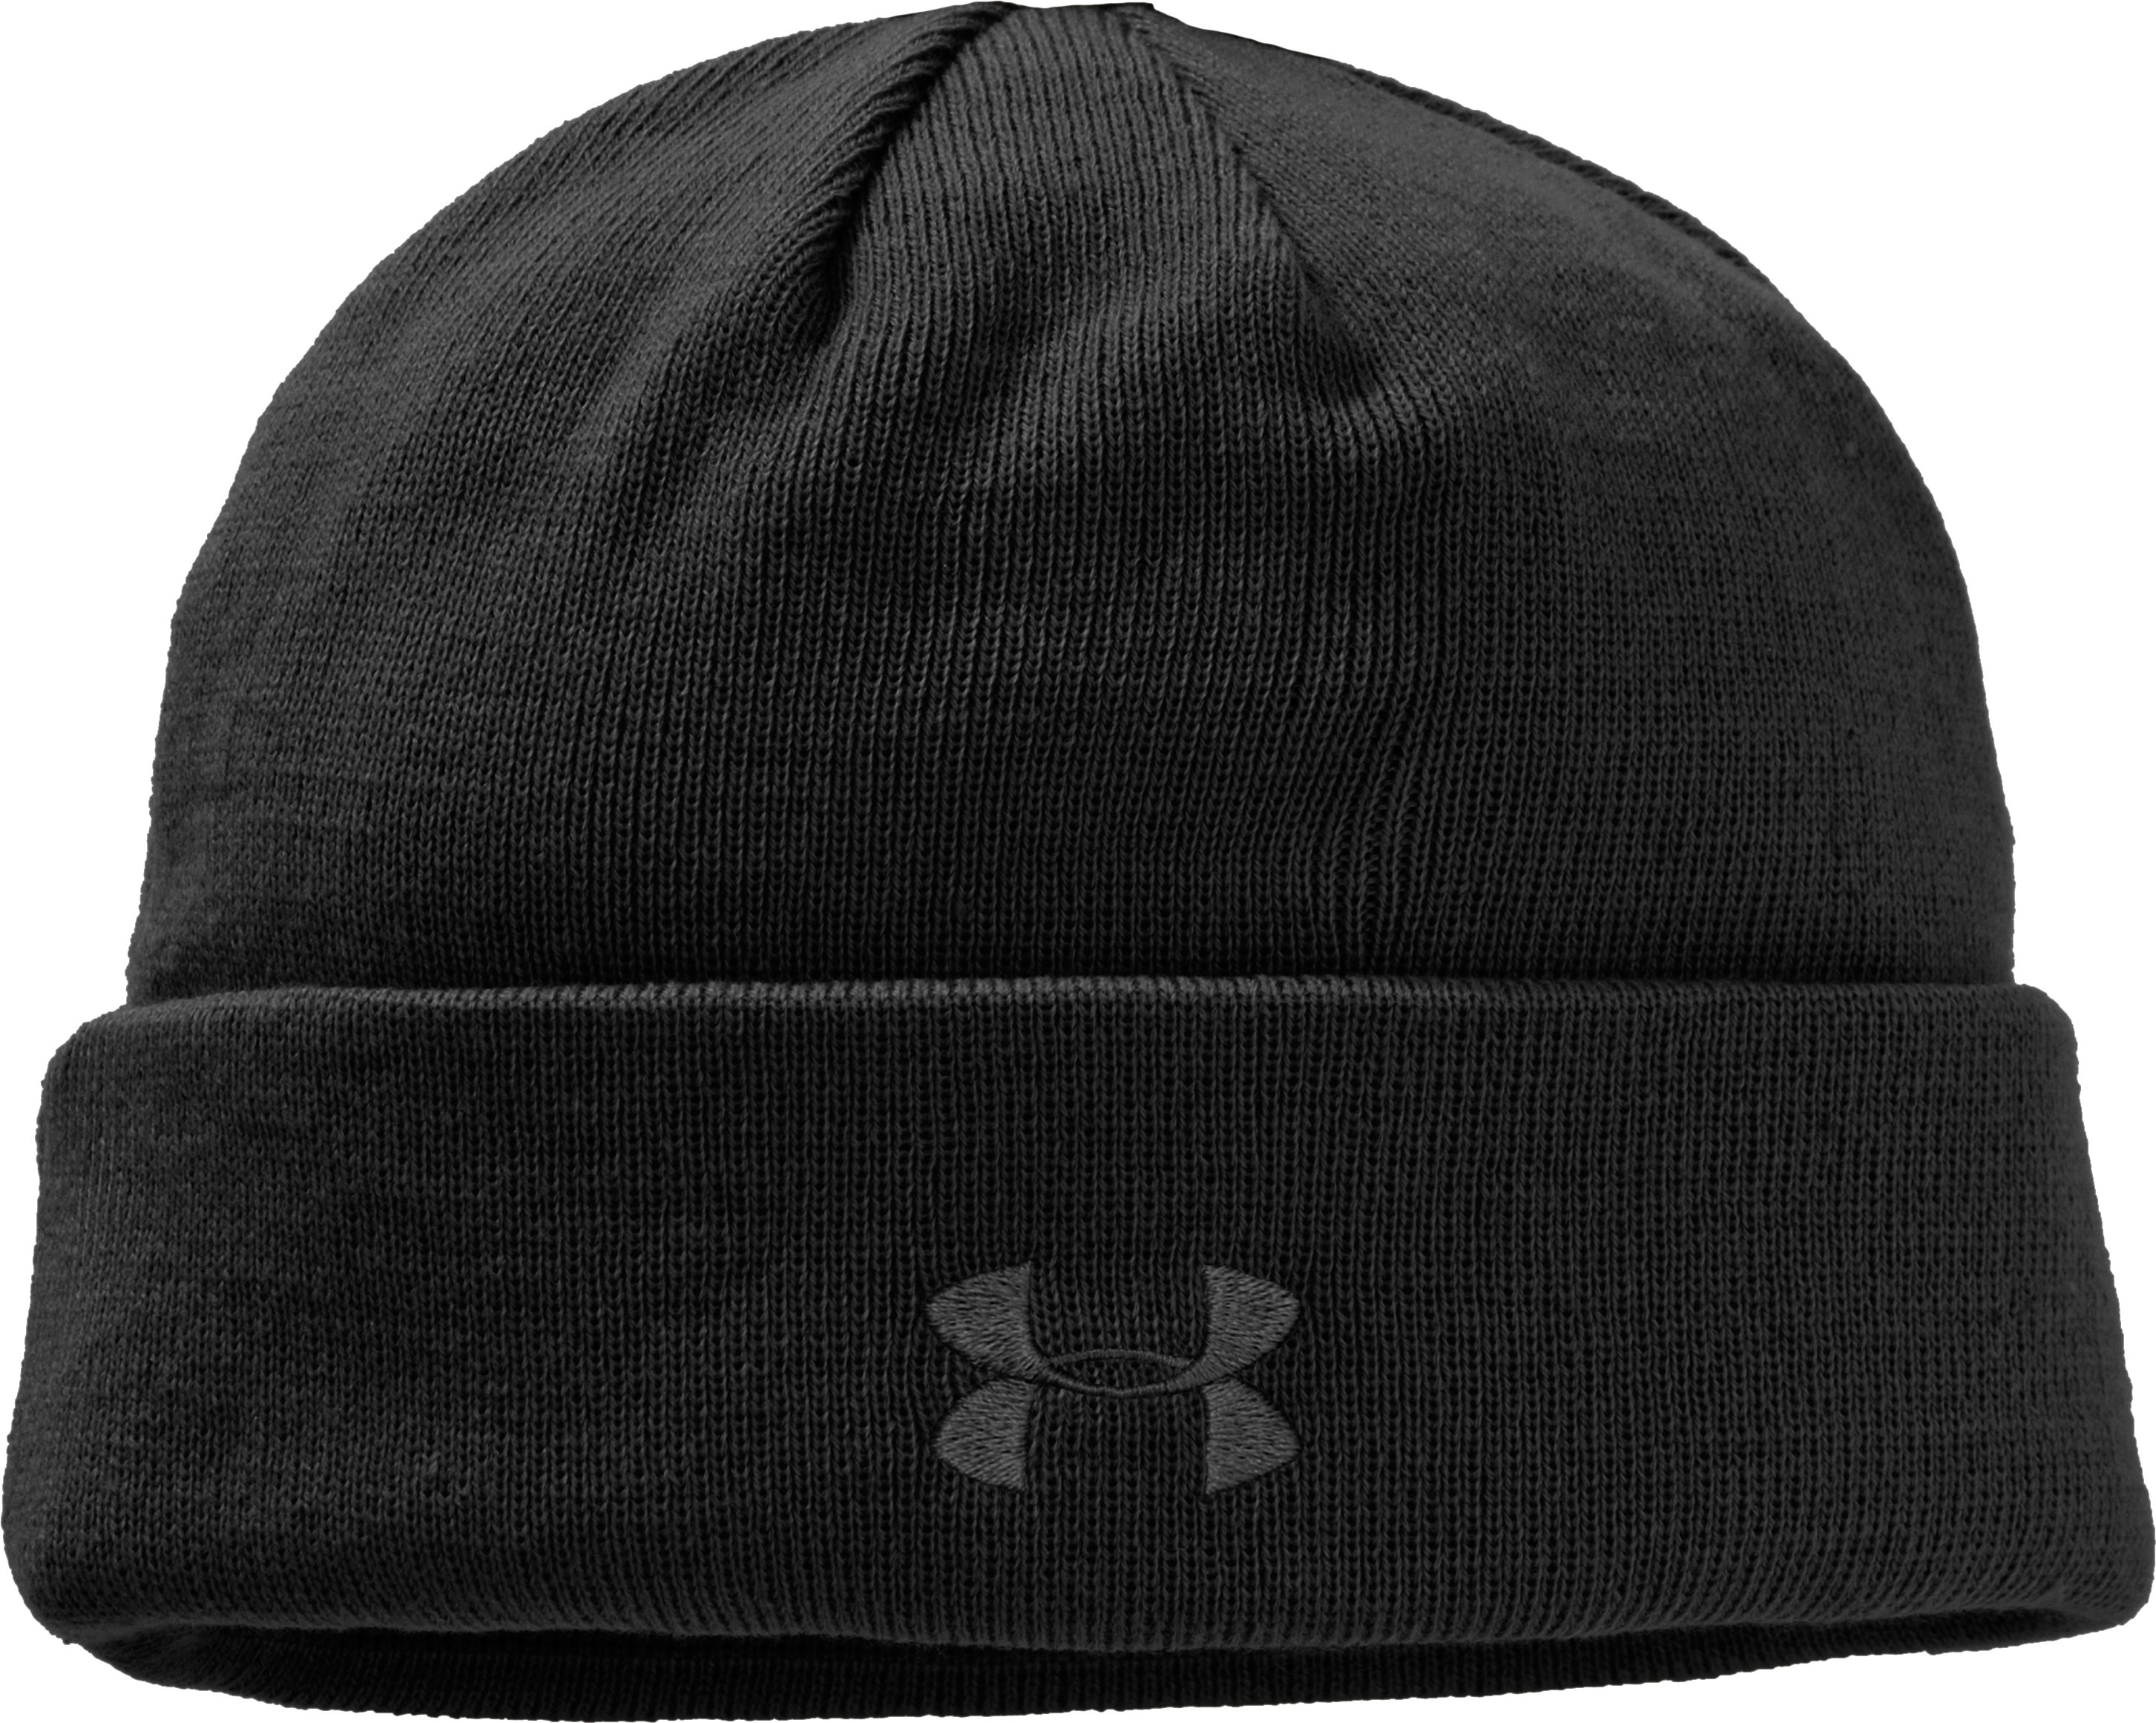 Men's Tactical Stealth Beanie, Black , zoomed image